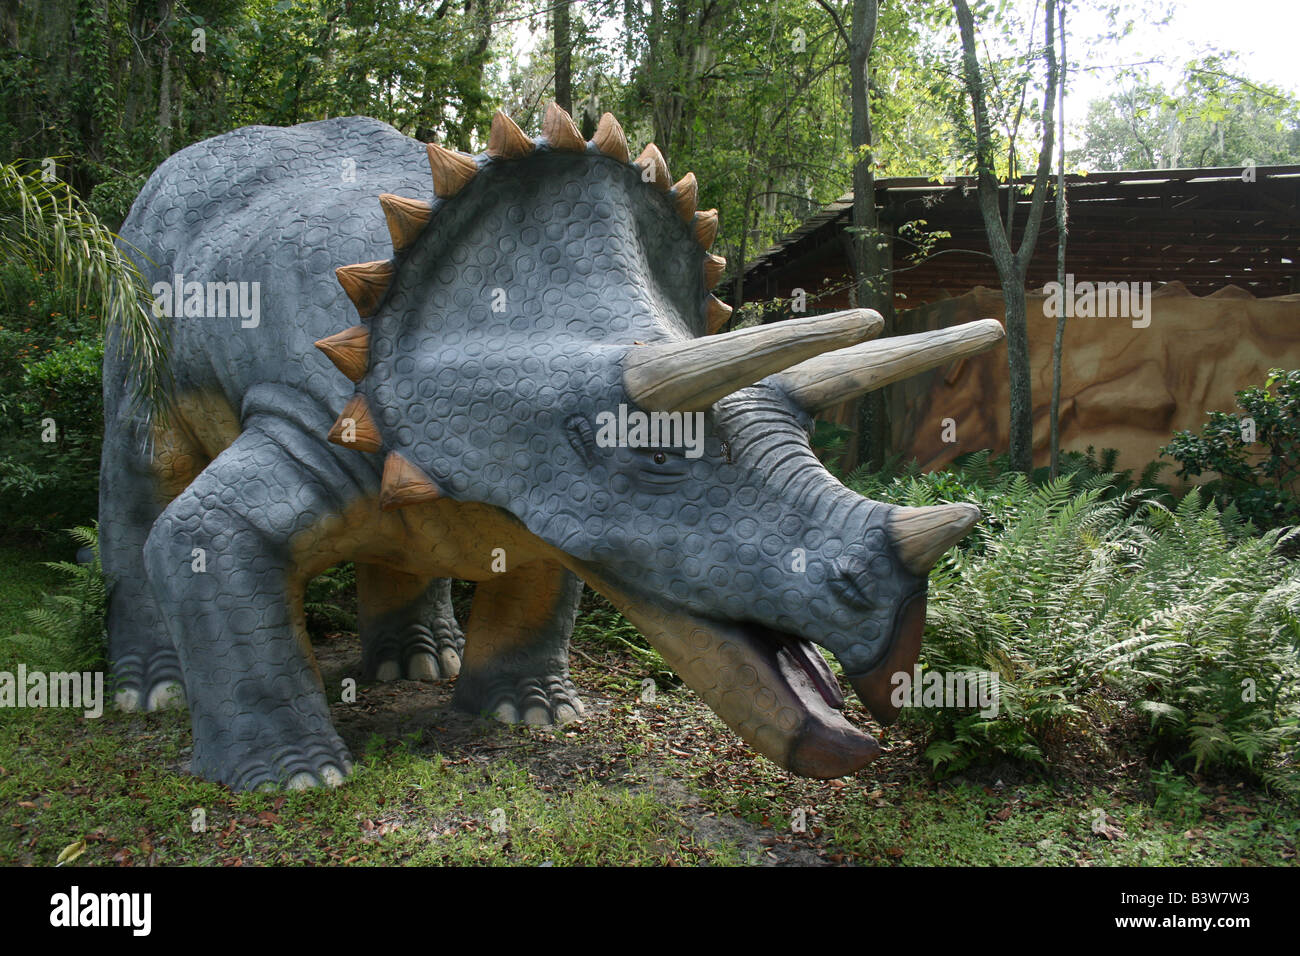 Triceratops dinosaur at Dinosaur World, Plant City, FL. - Stock Image